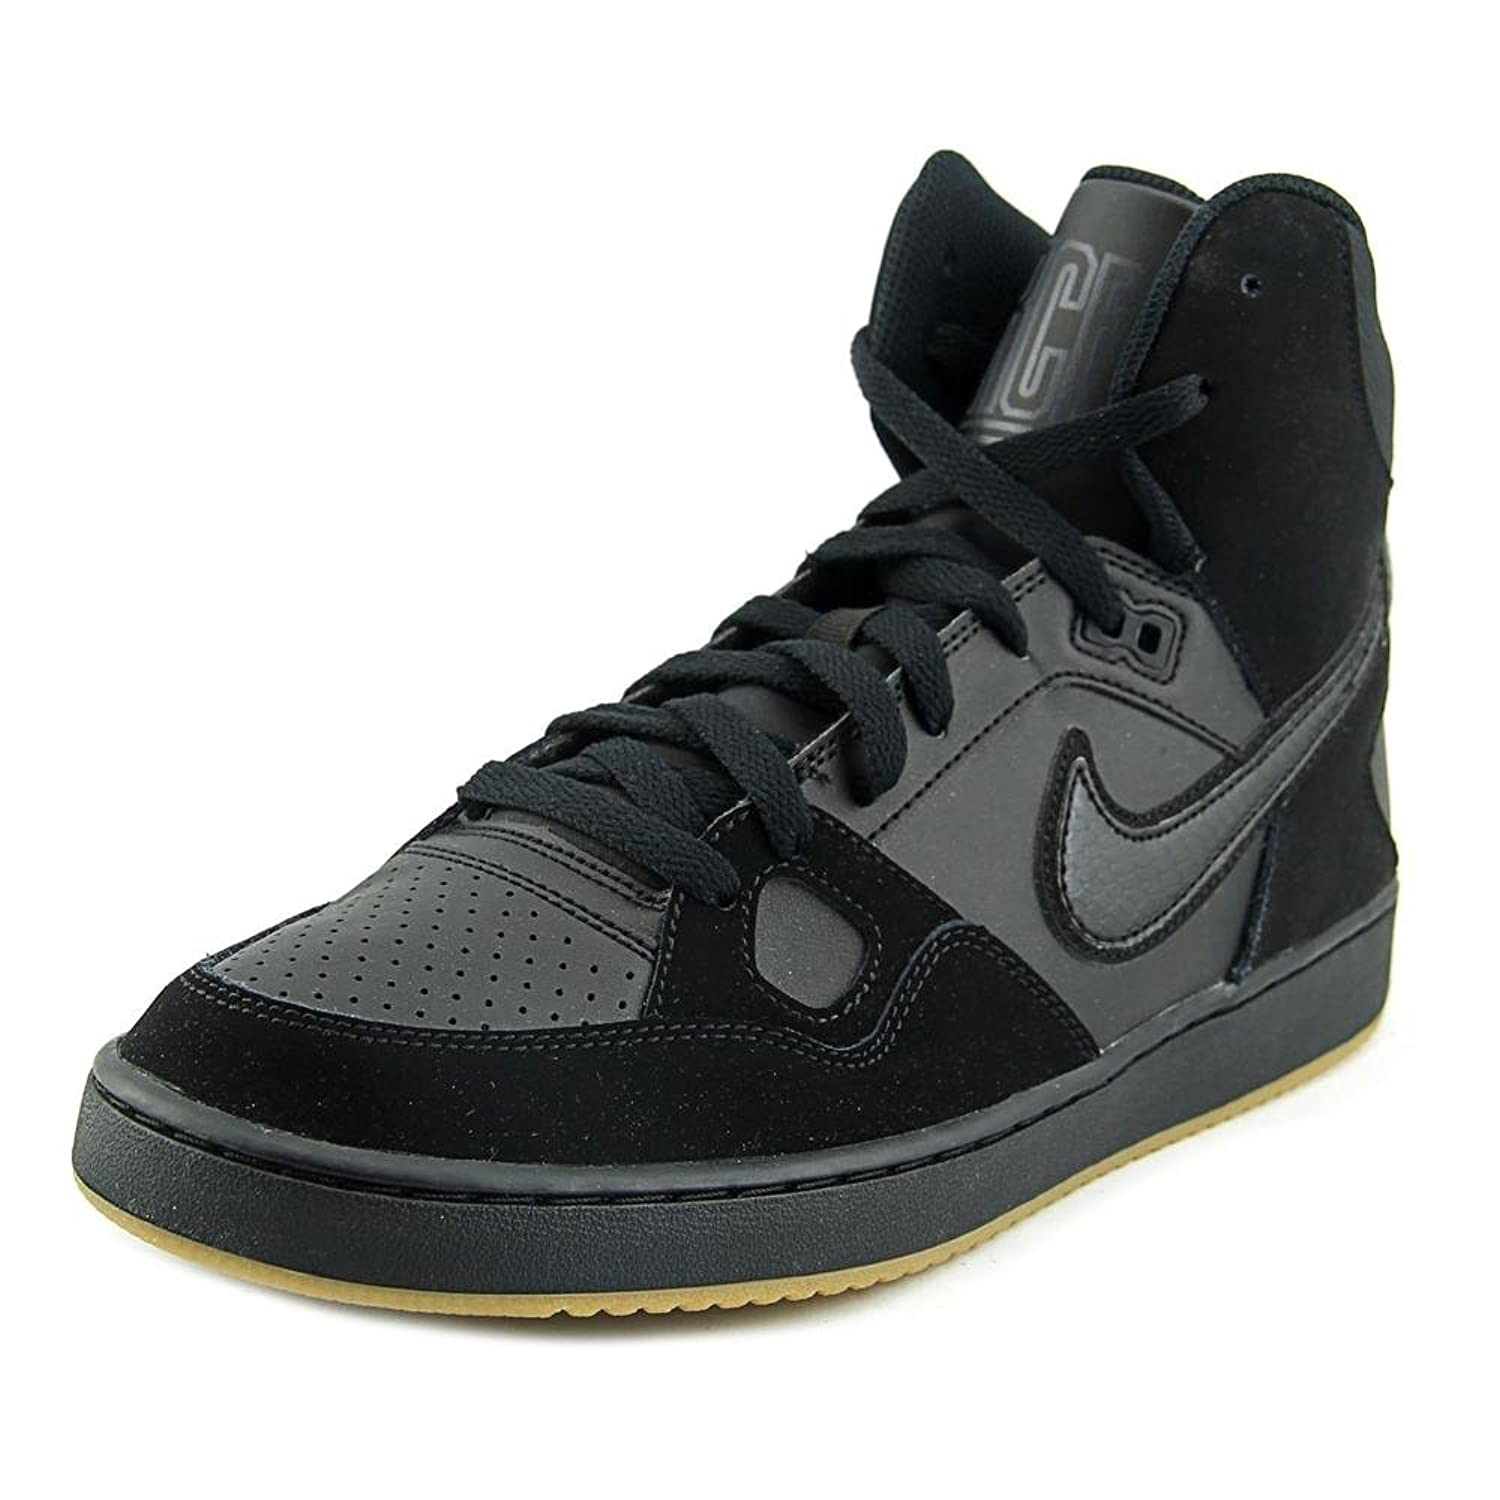 5a183b5e2 lovely Nike Men s Son of Force Mid Basketball Shoe - holmedalblikk.no